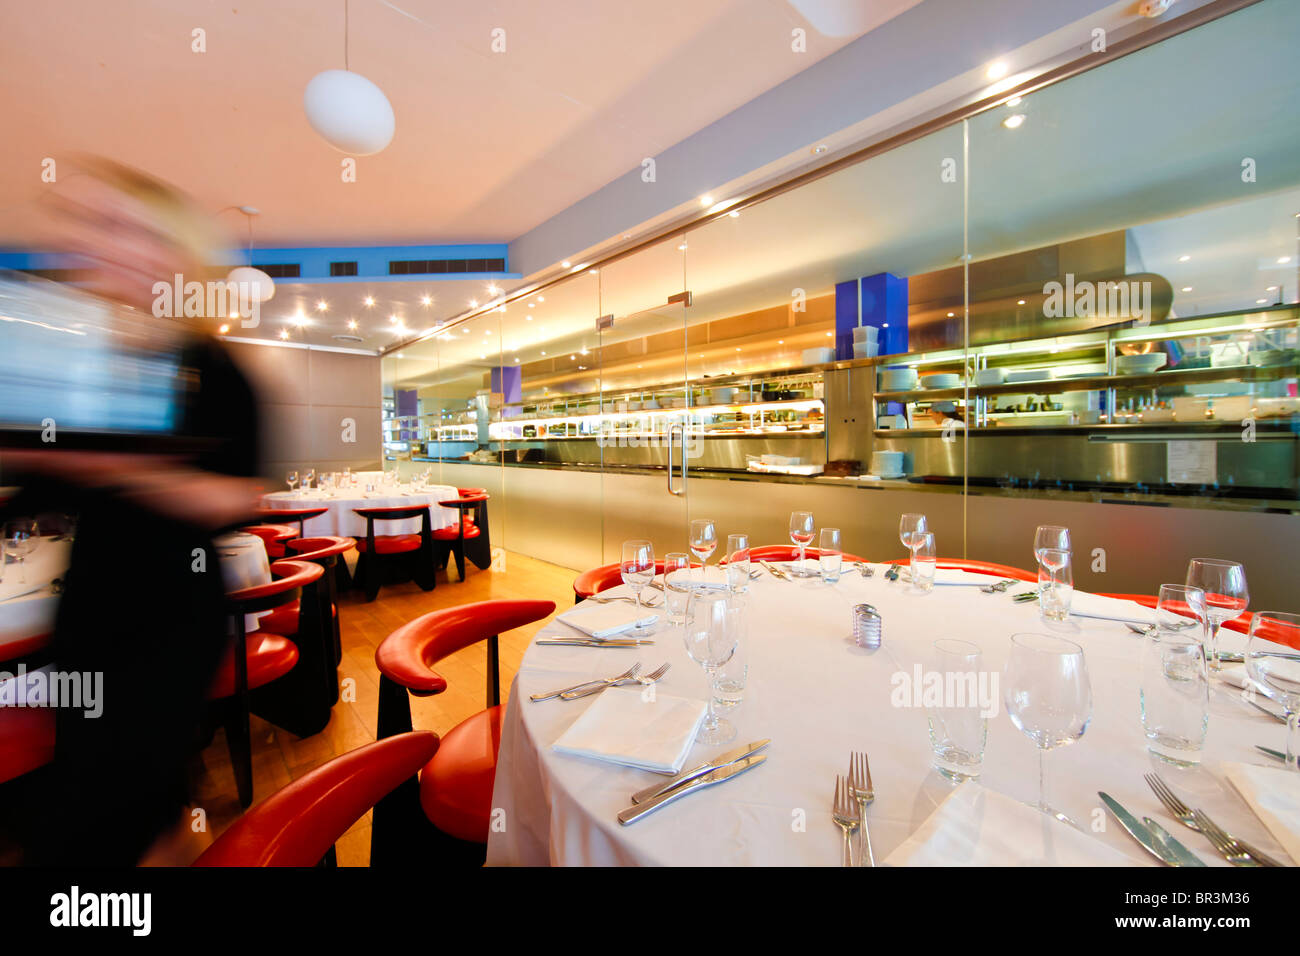 Tables laid ready for service in a restaurant in Birmingham City Center. - Stock Image